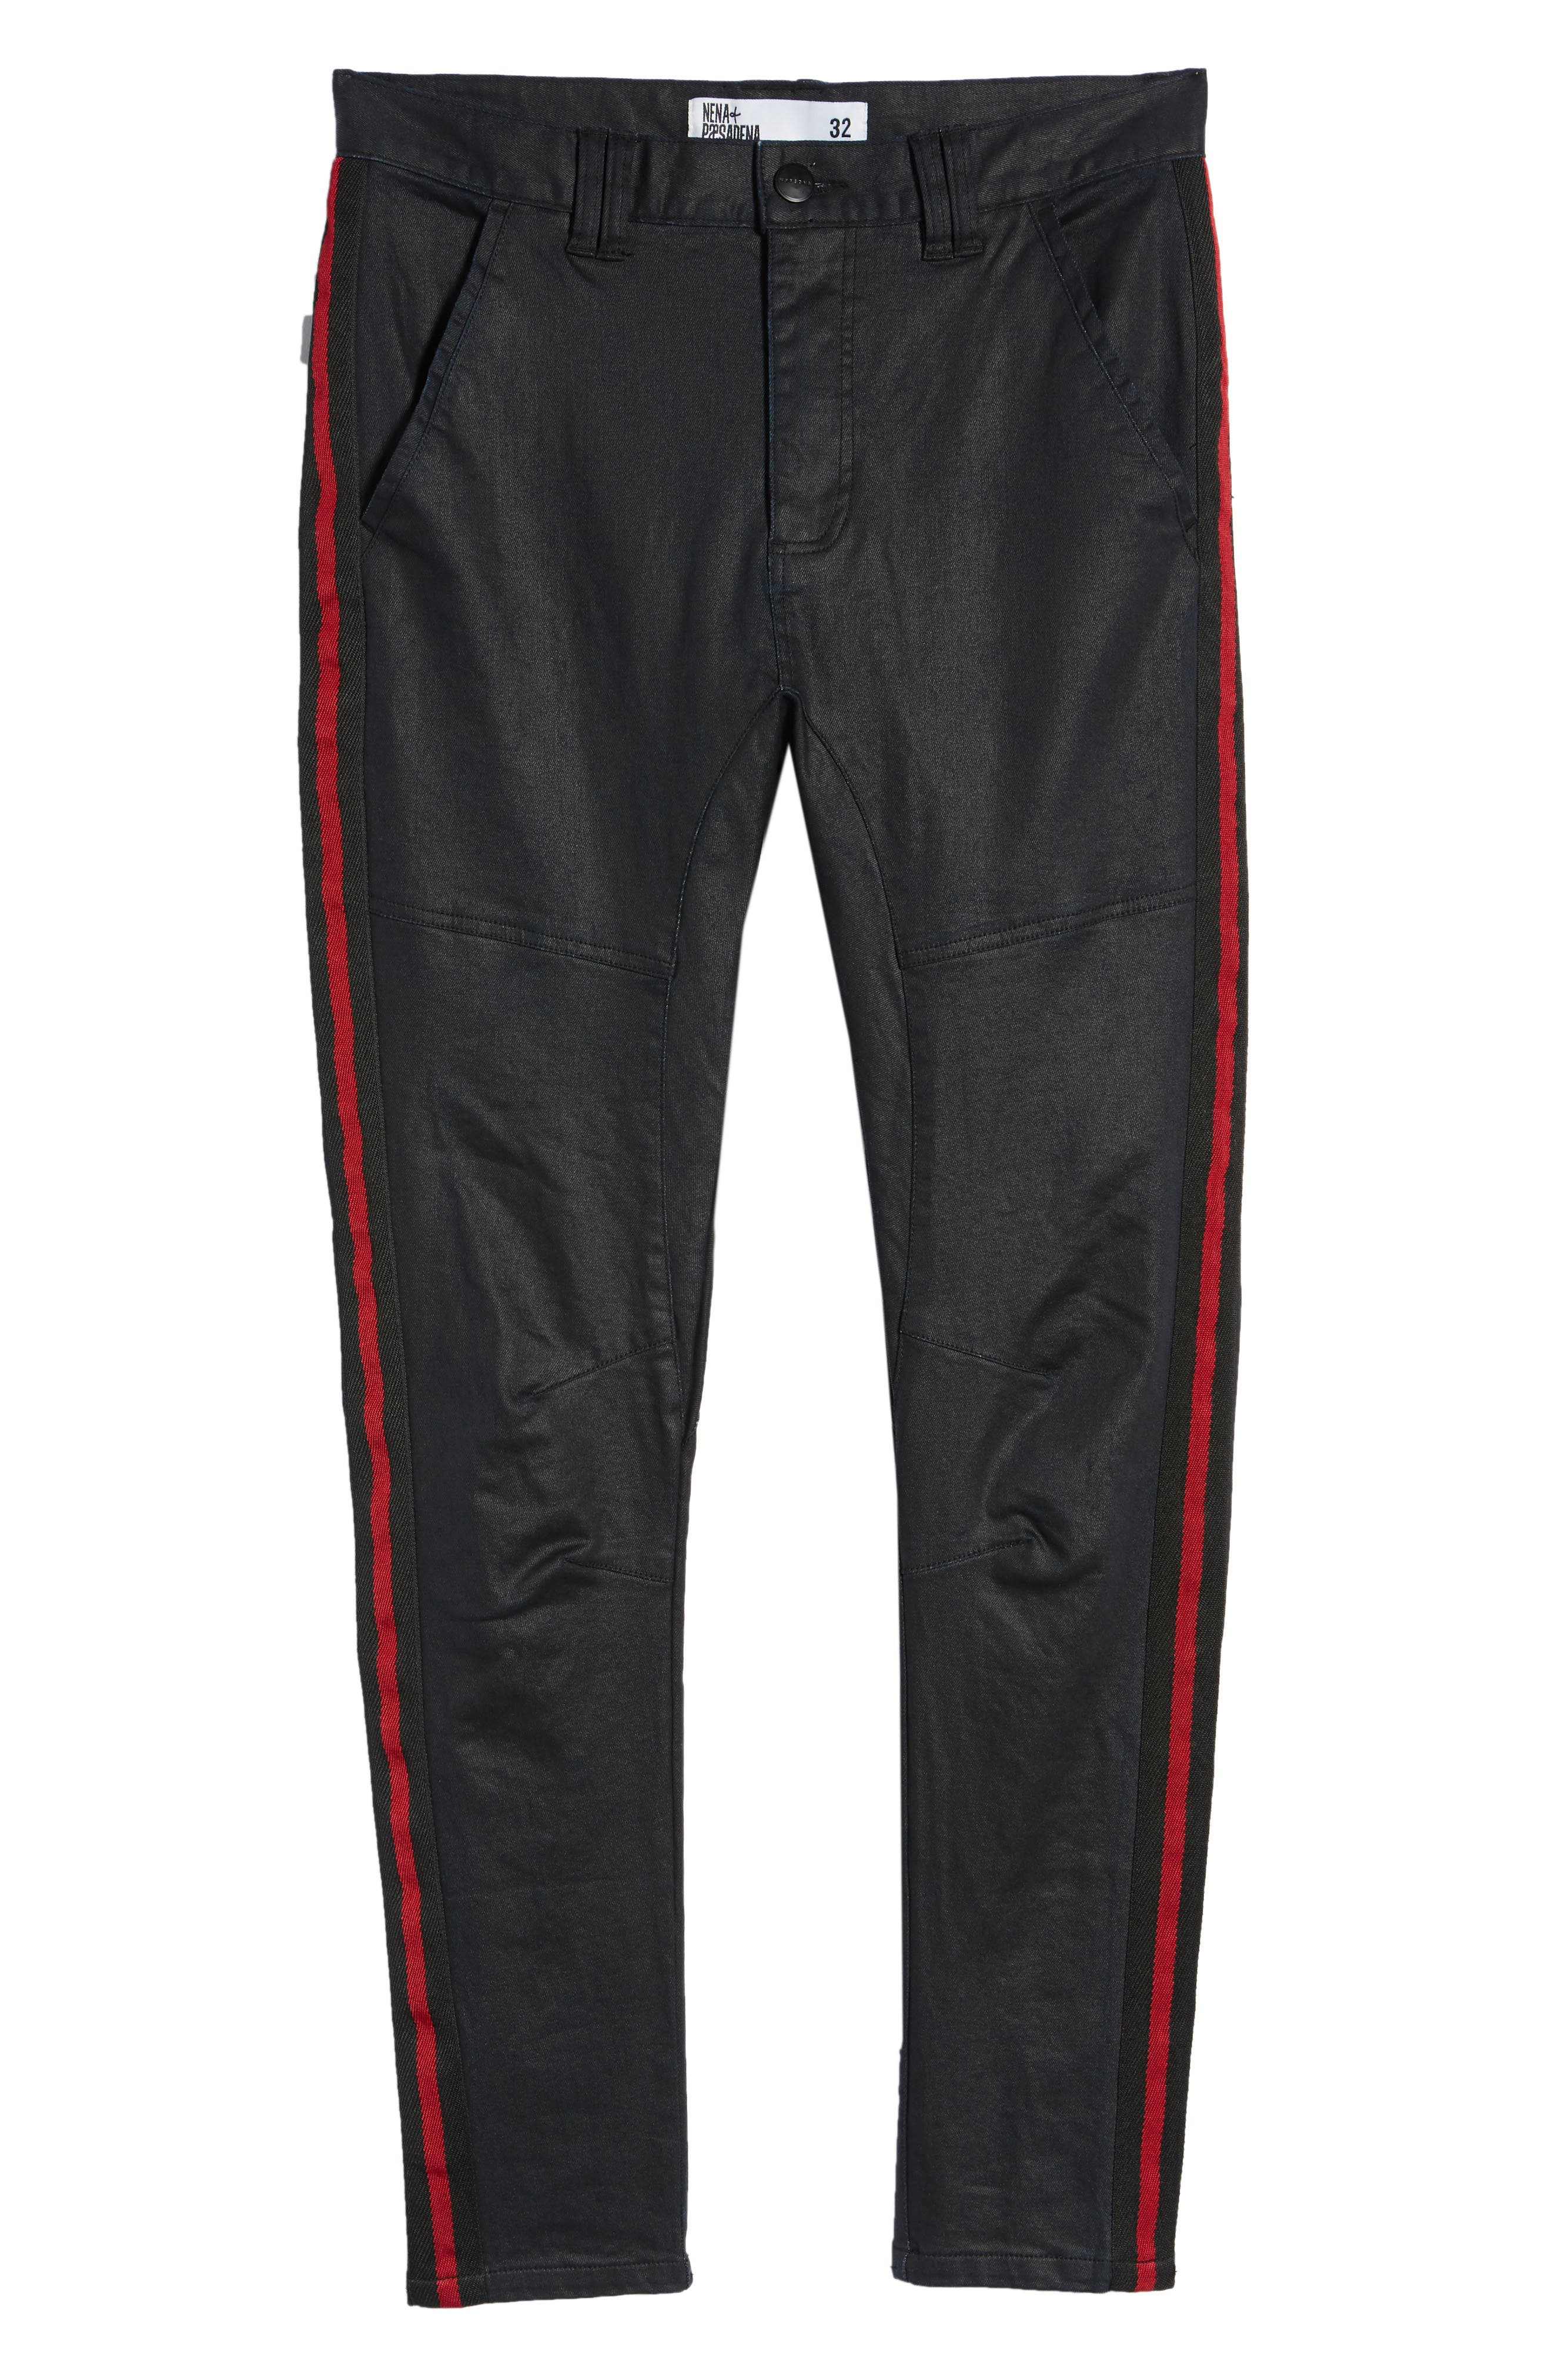 Baseline Taped Skinny Fit Jeans,                             Alternate thumbnail 6, color,                             WAX BLACK RED STRIPE